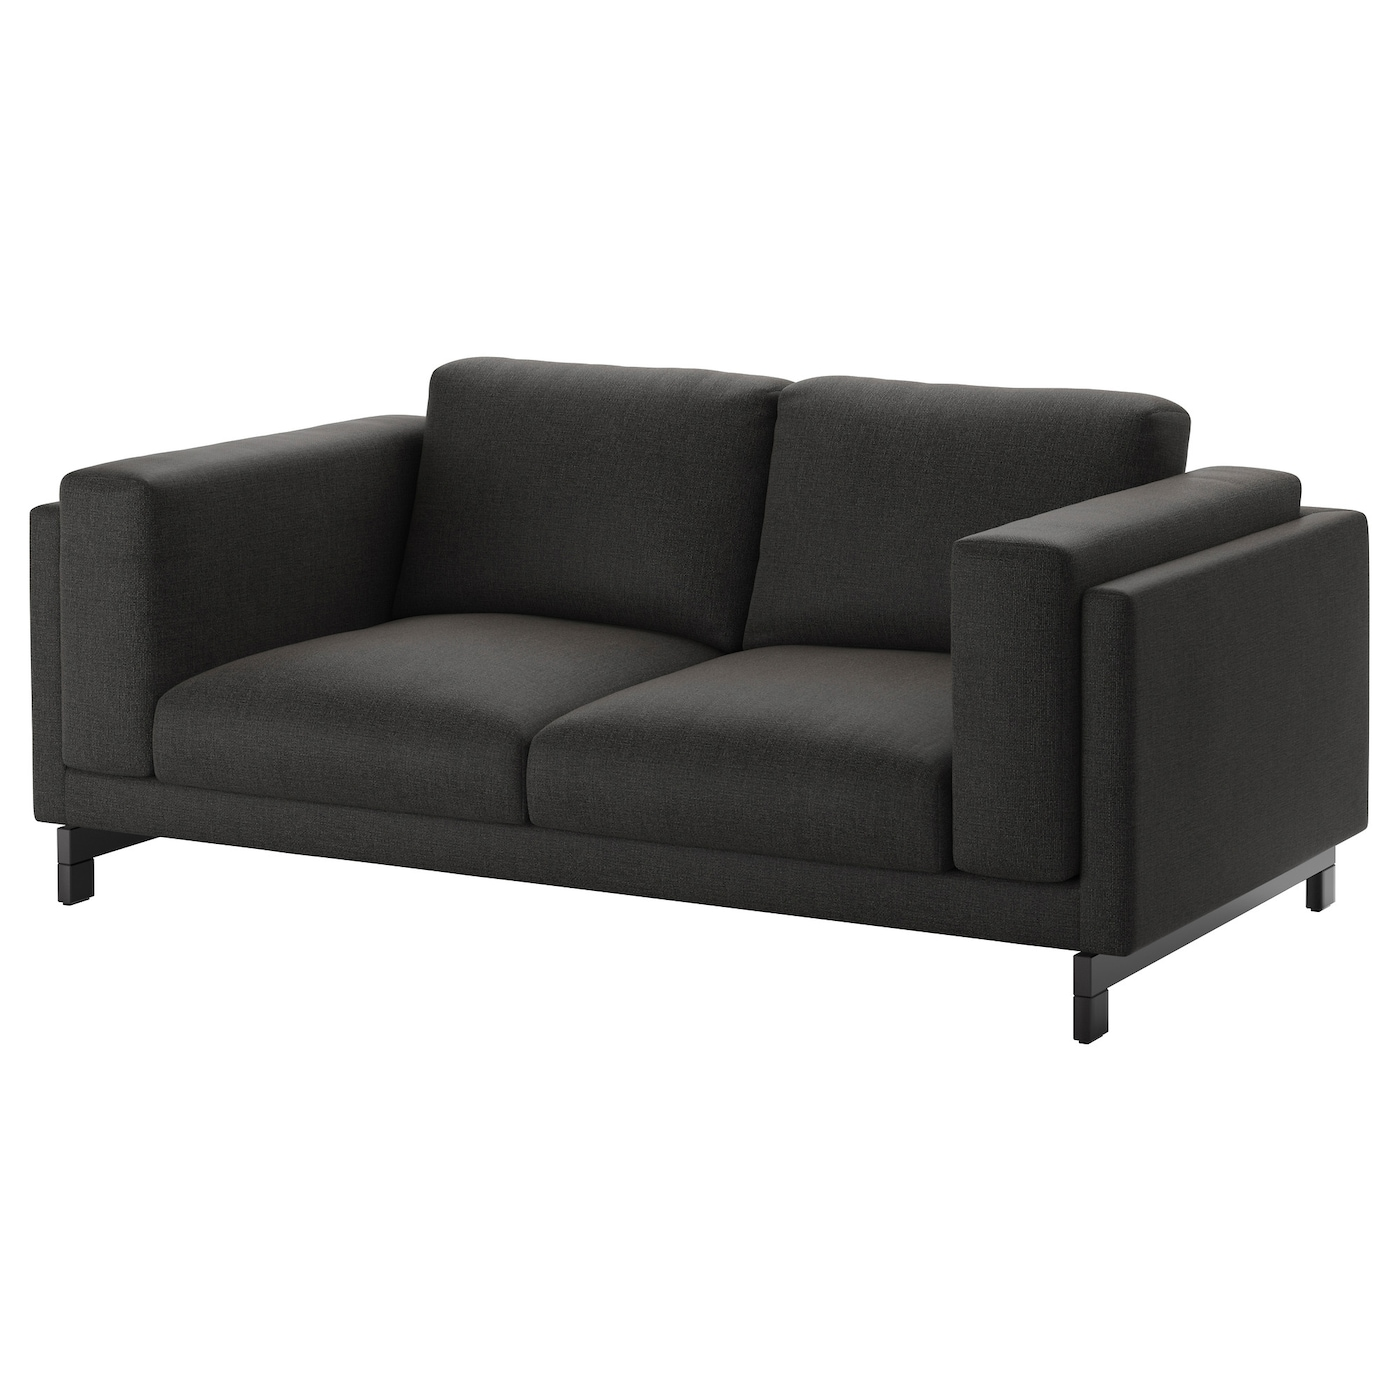 nockeby two seat sofa ten dark grey wood ikea. Black Bedroom Furniture Sets. Home Design Ideas